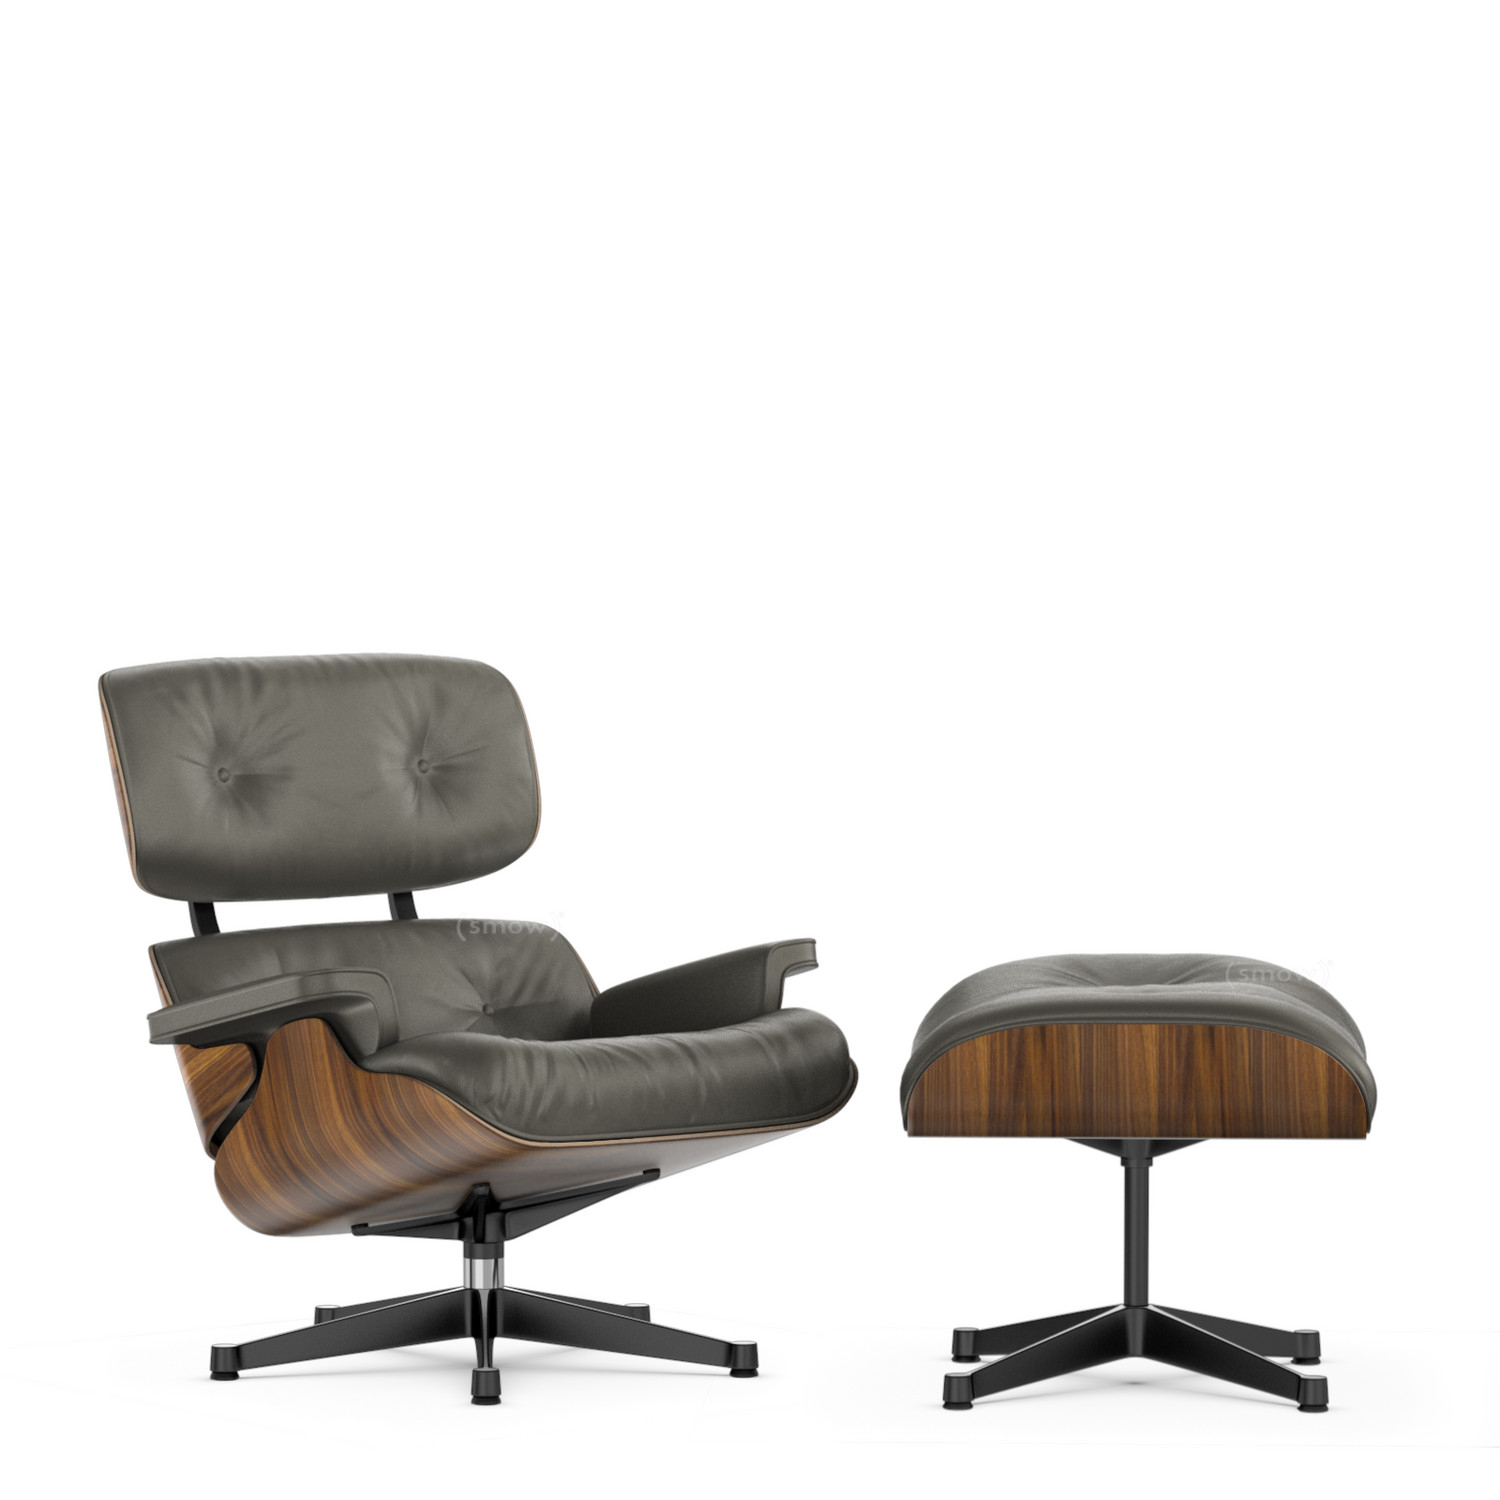 Lieblich Lounge Chair U0026 Ottoman   Beauty Versions Walnut With Black  Pigmentation|Umbra Grey|89